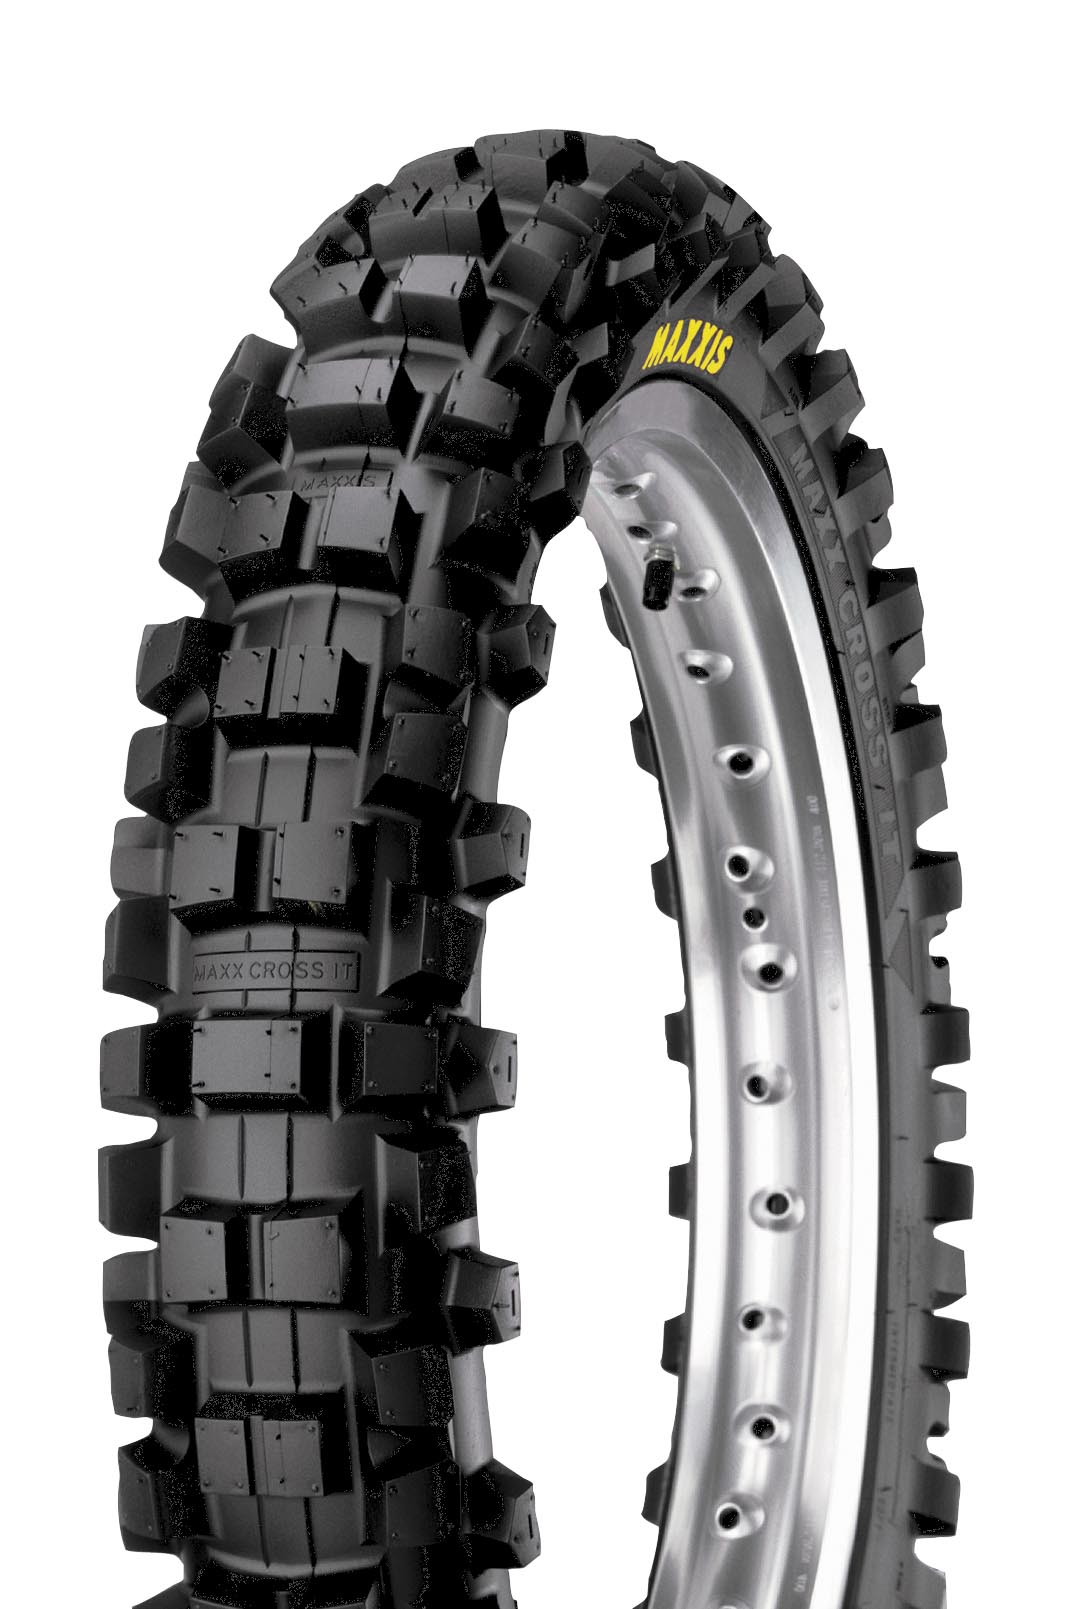 M7305 Maxxcross IT Tire